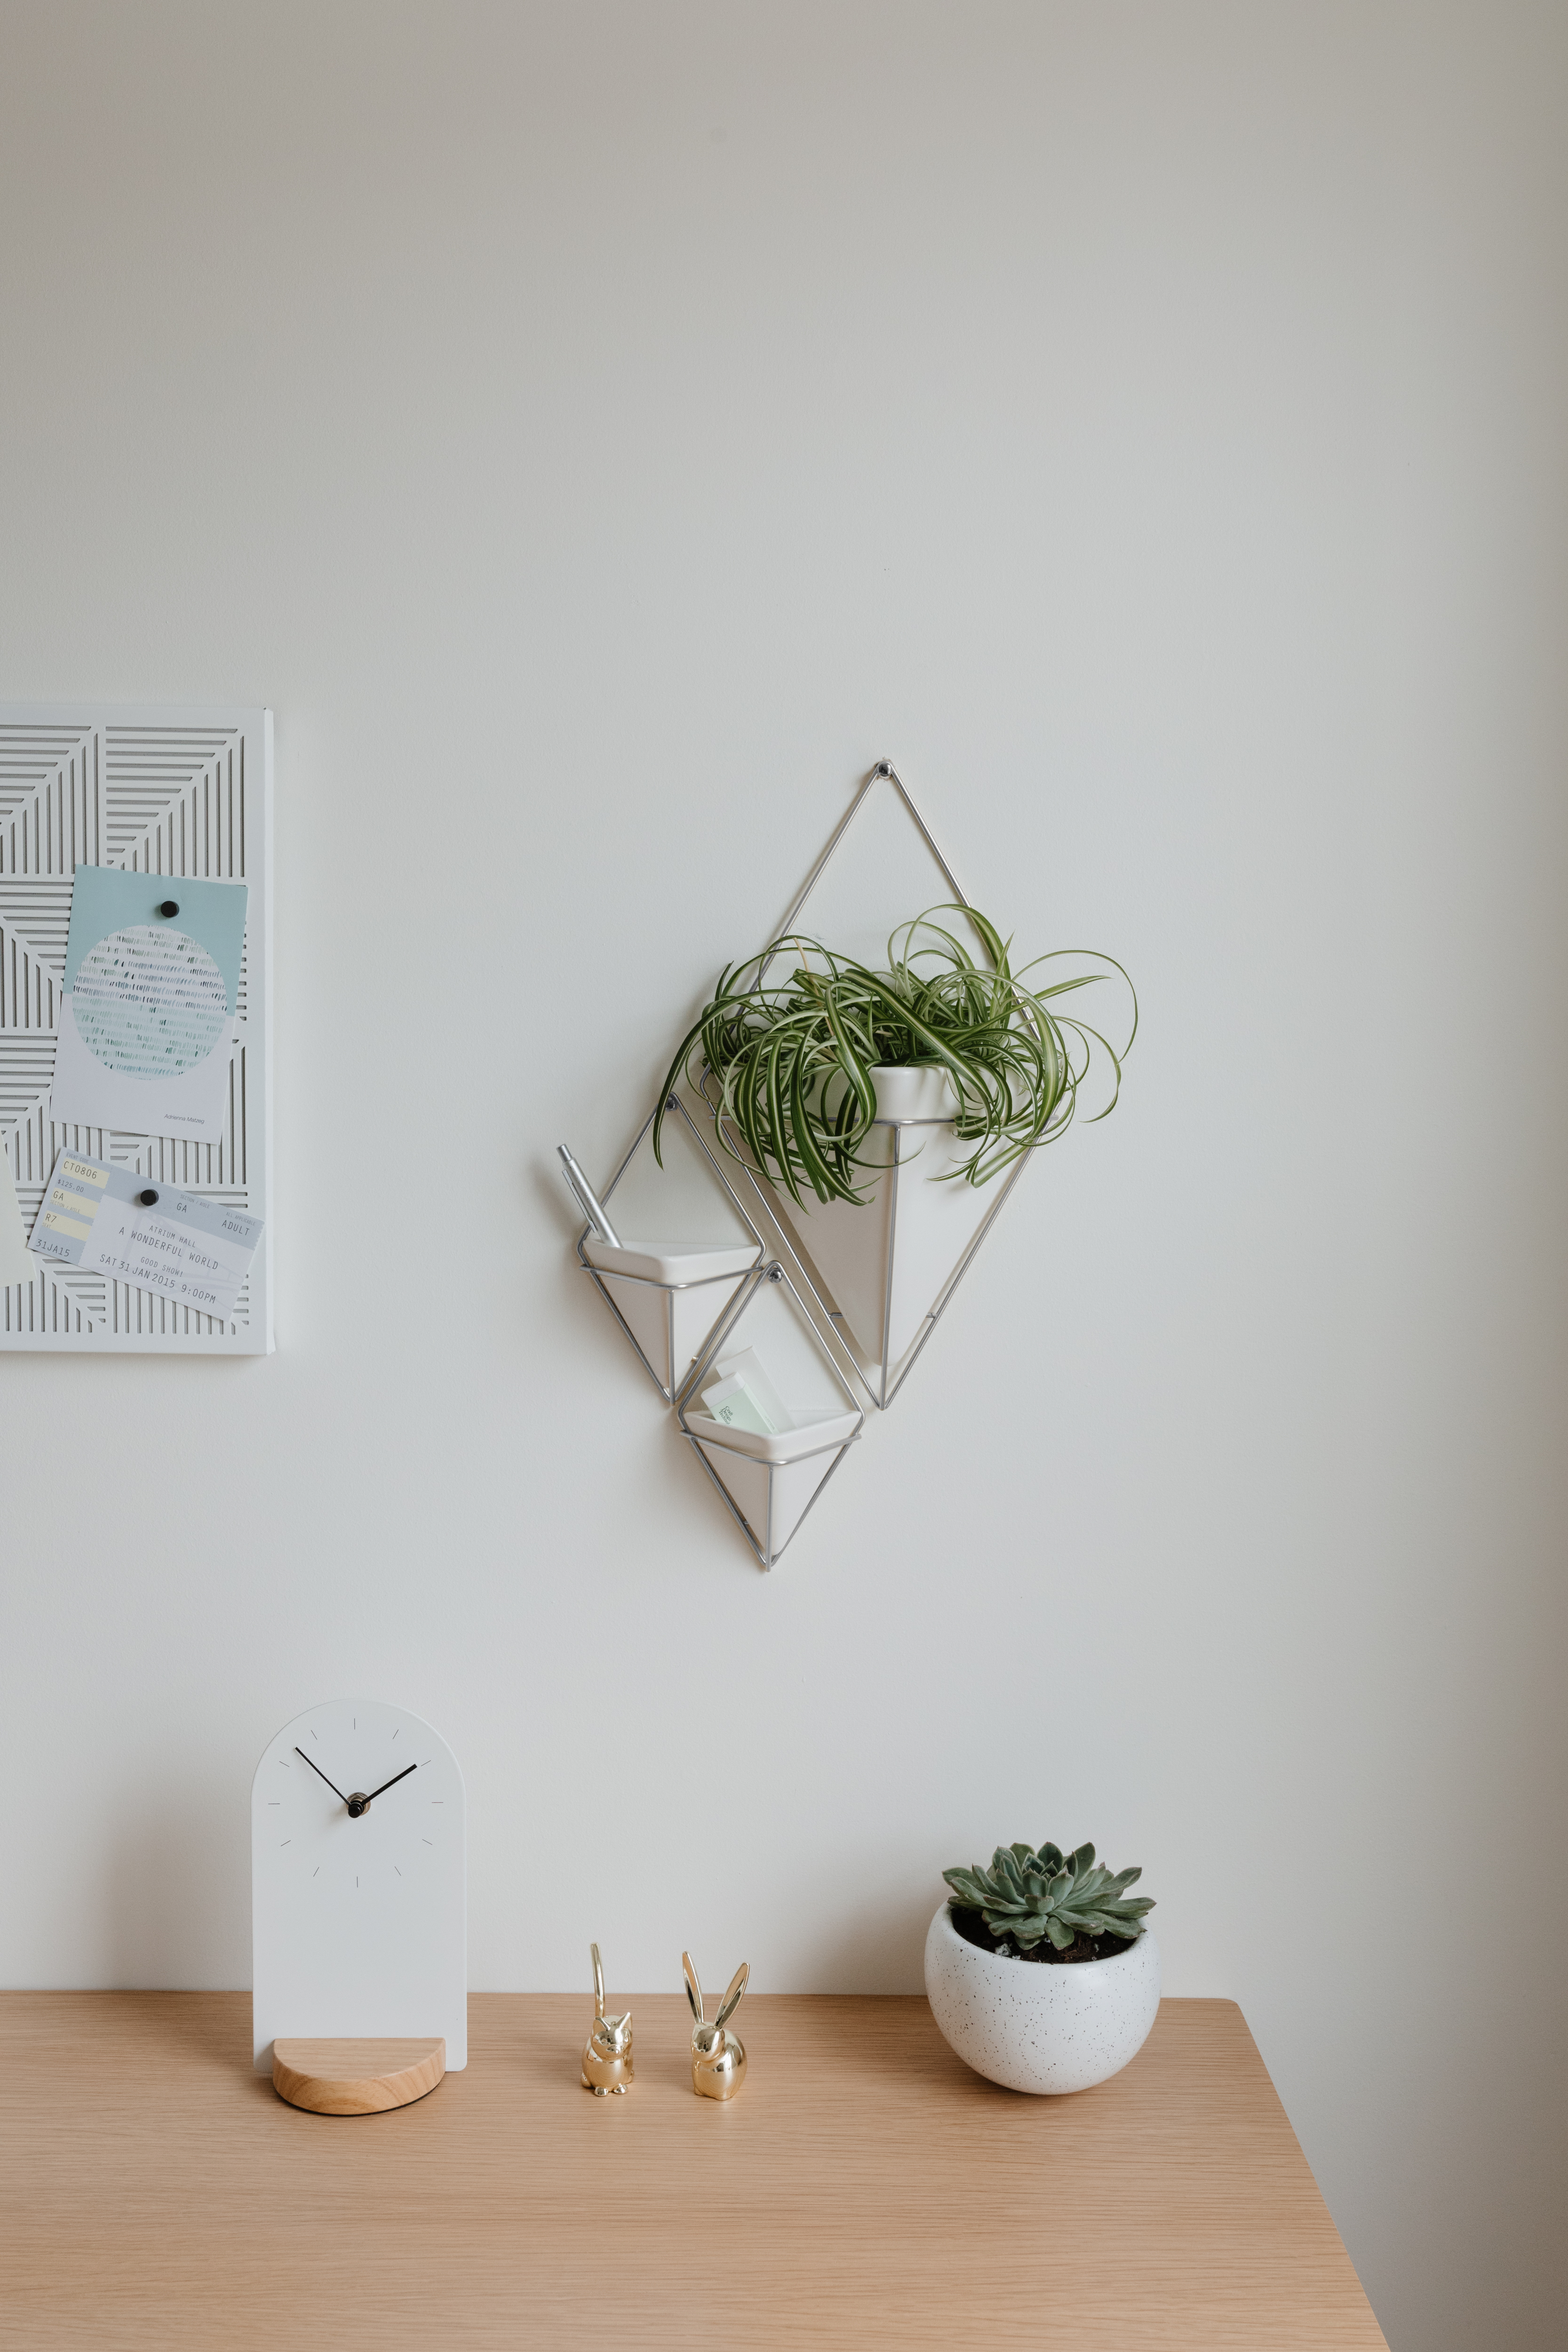 Trigg Hanging Planter Vase & Geometric Wall Decor Container – Great Within Most Recent Trigg Ceramic Planter Wall Decor (Gallery 17 of 20)